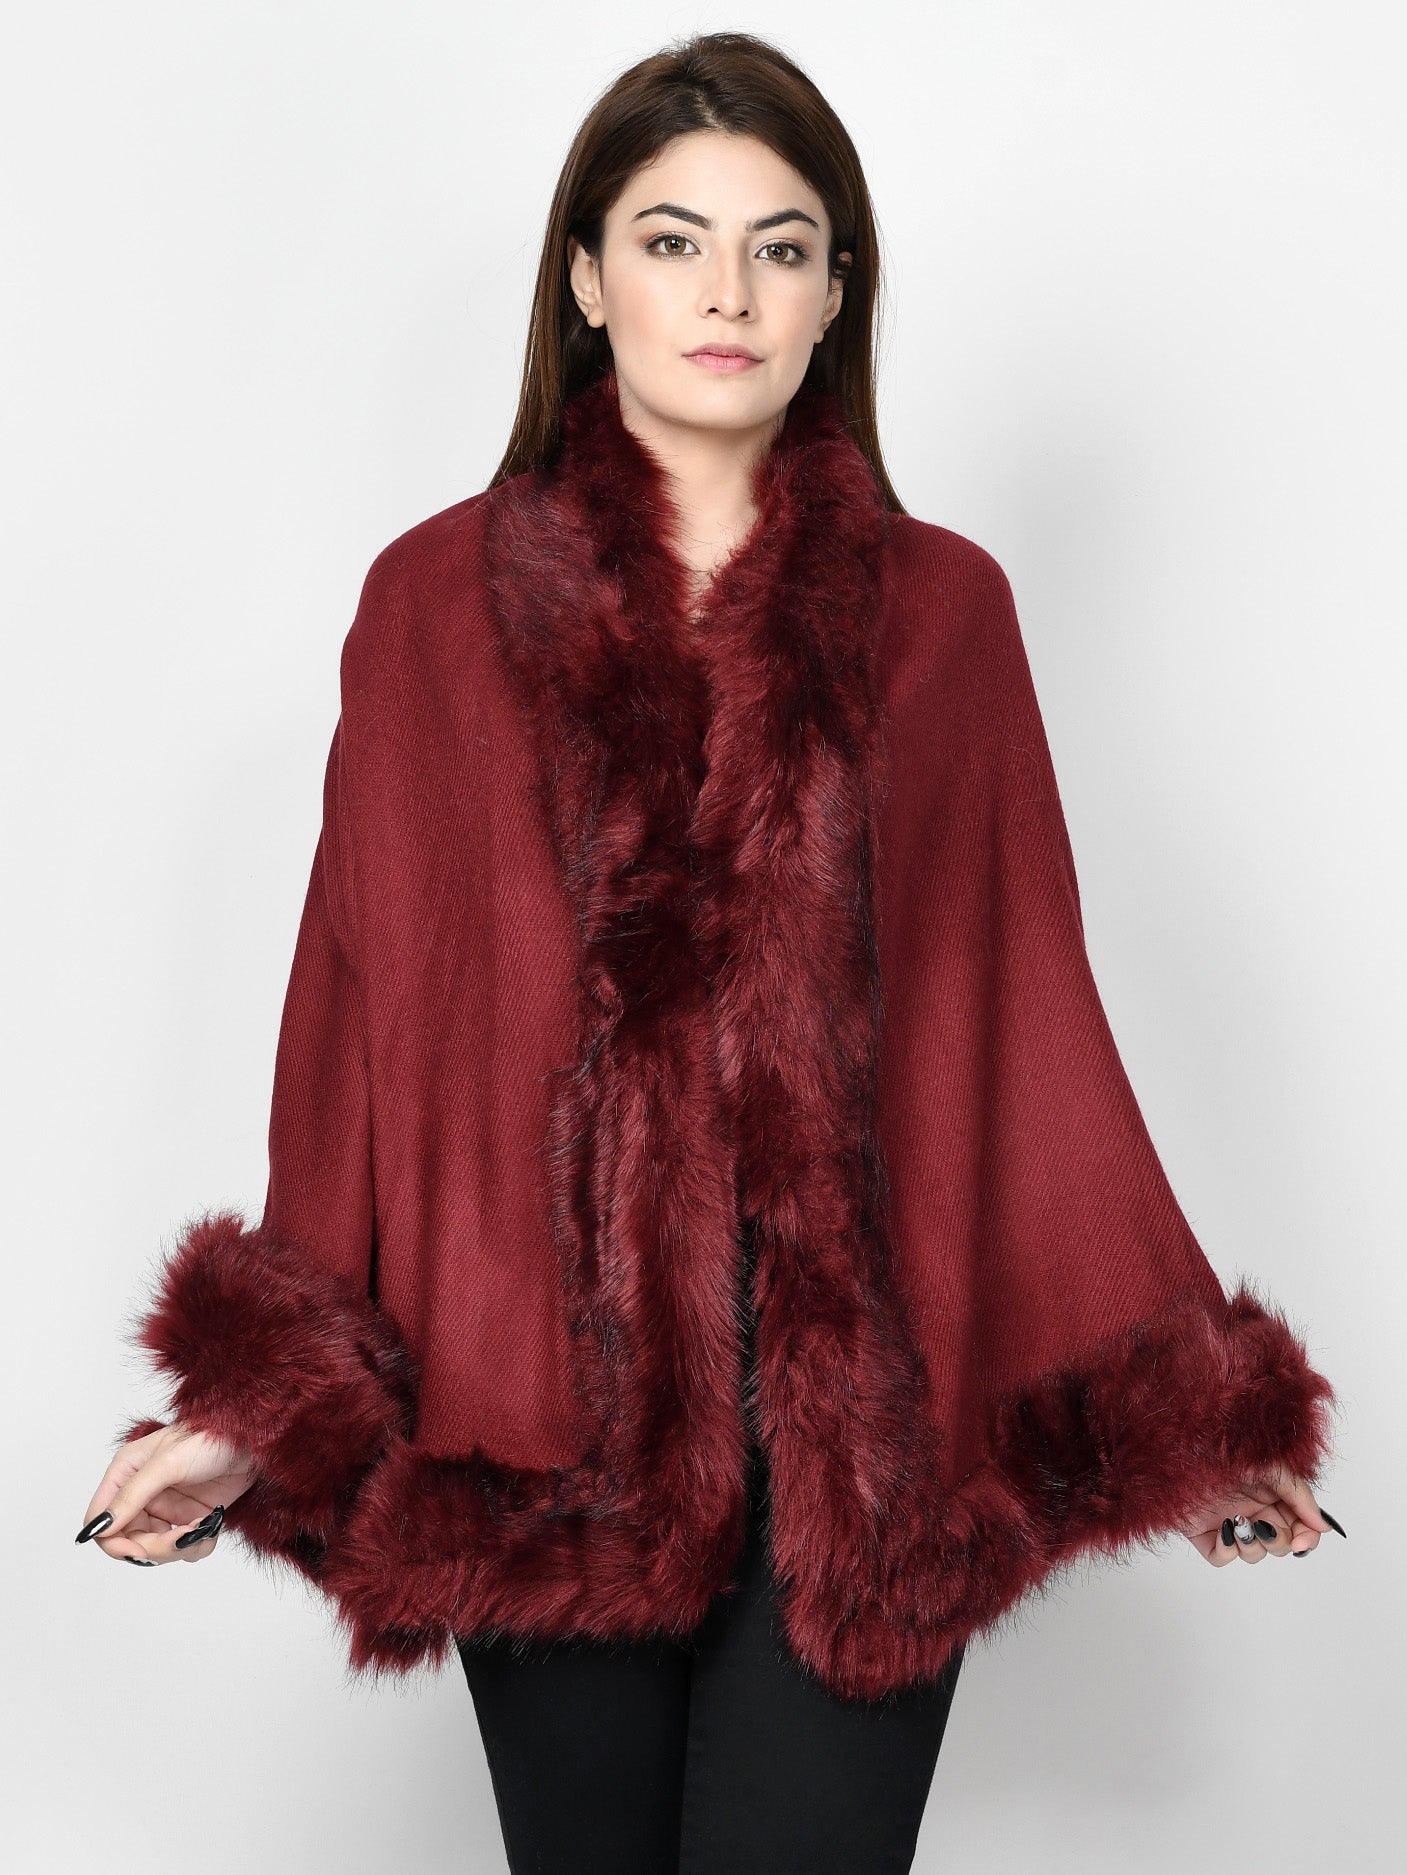 Limelight Online Classic Coat - Maroon COT91-SML-MRN